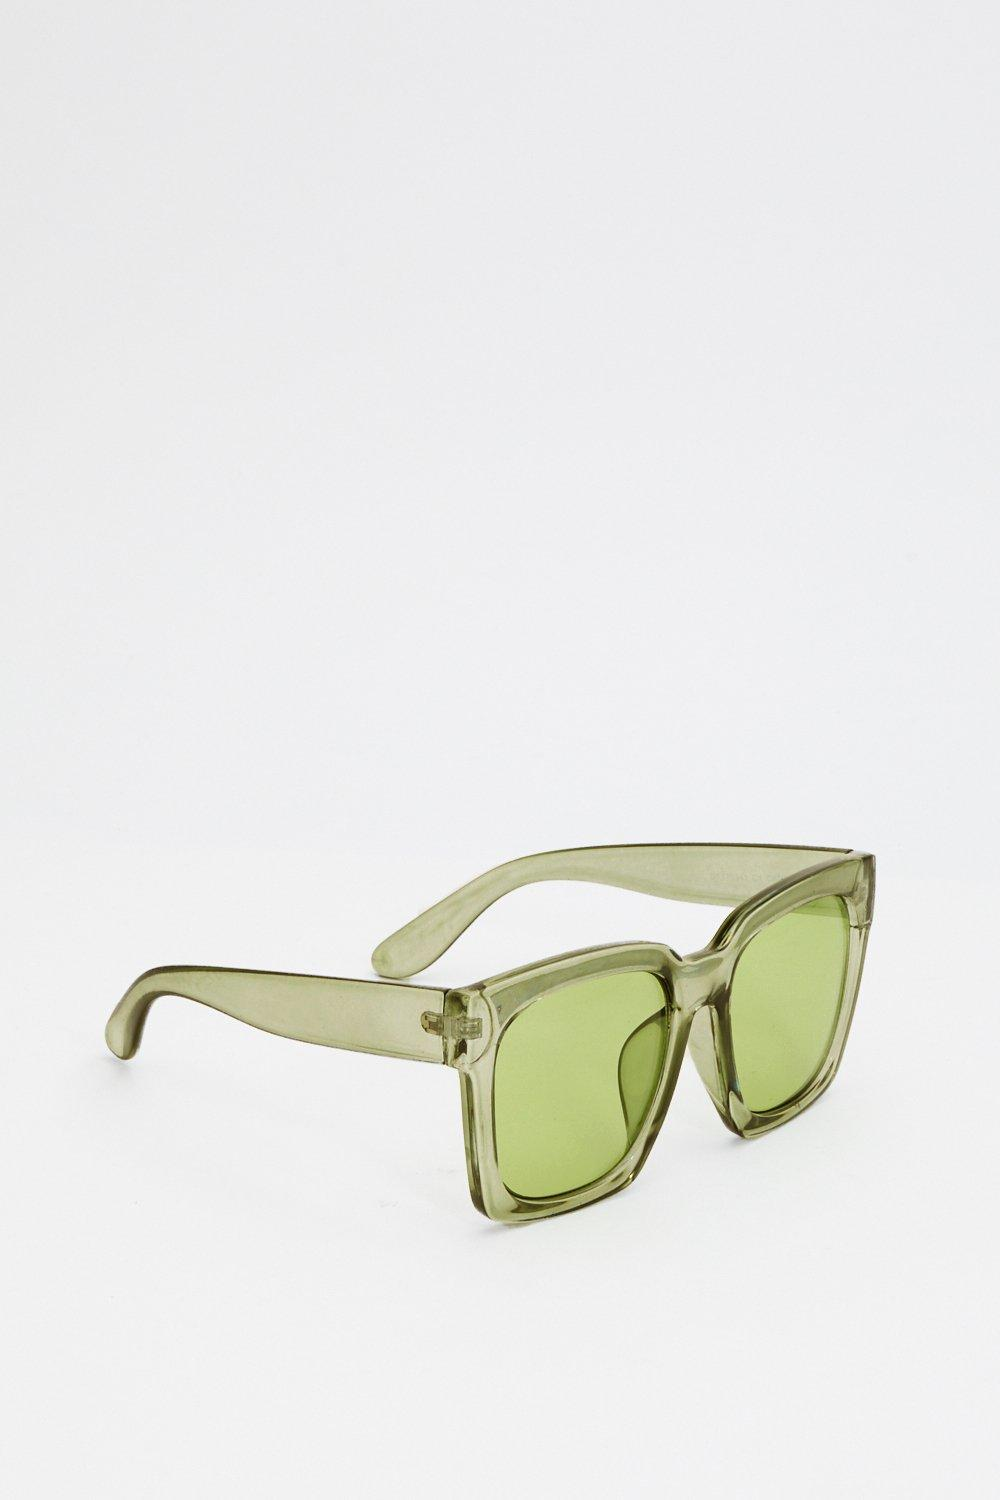 cc4882403f19f Womens Green Envious Oversized Square Sunglasses.